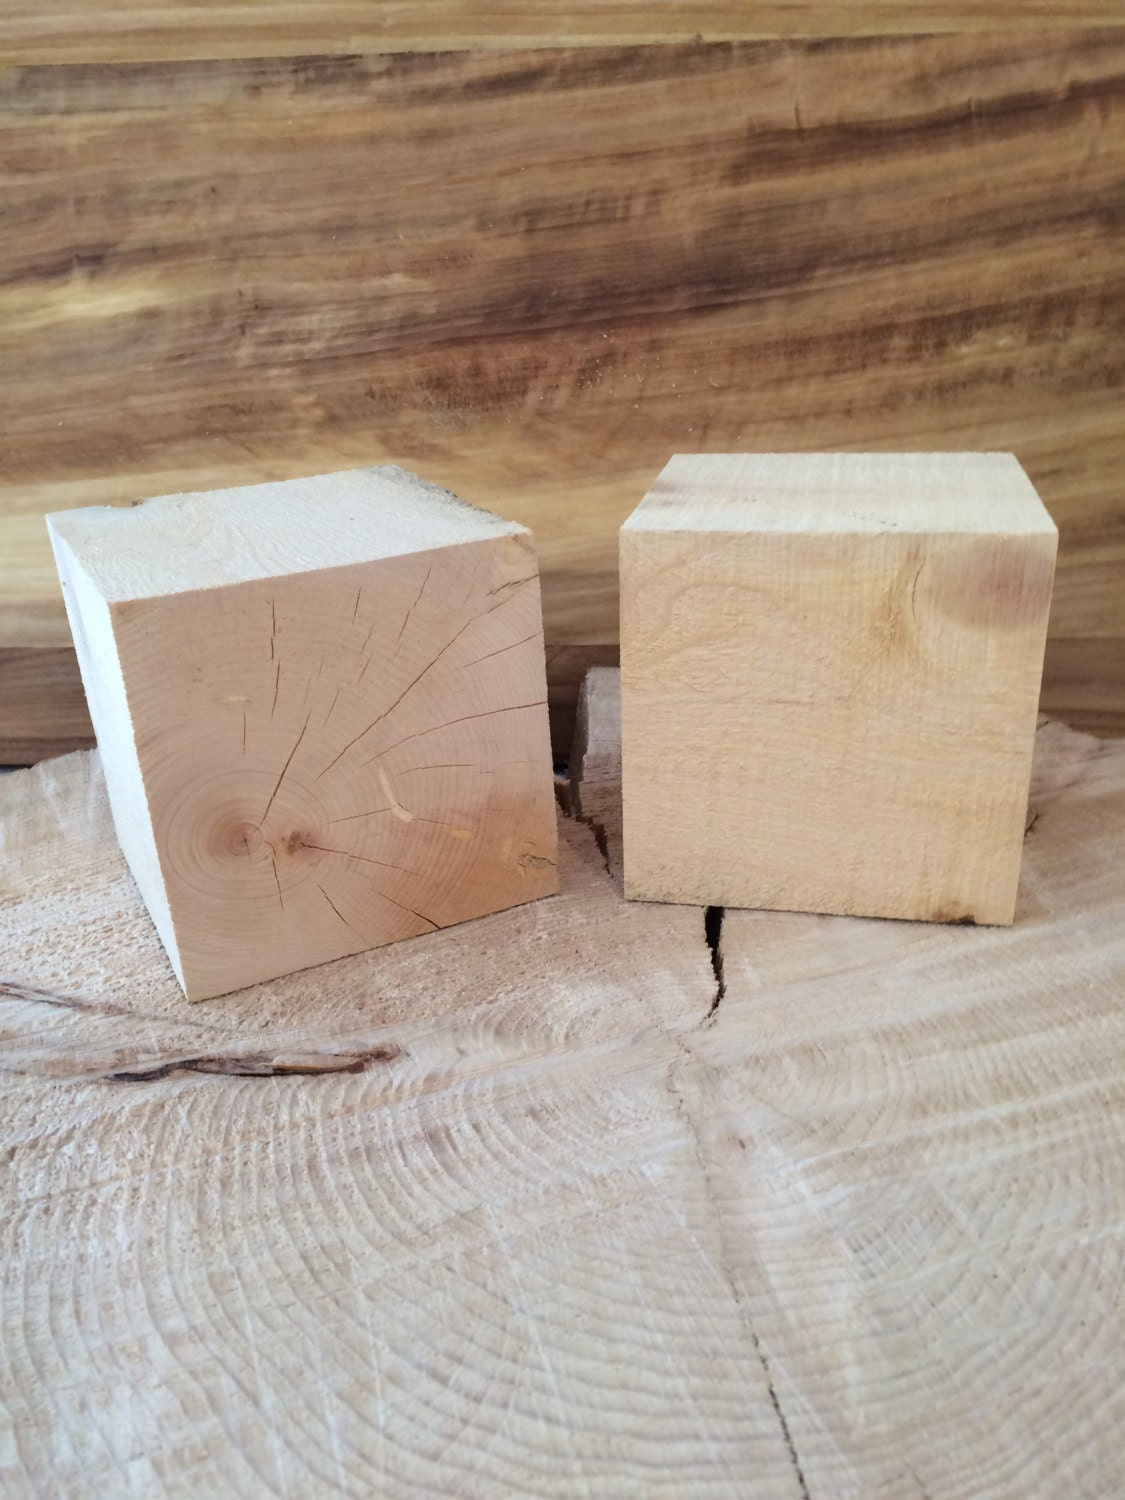 Pinyon pine inch wood blocks